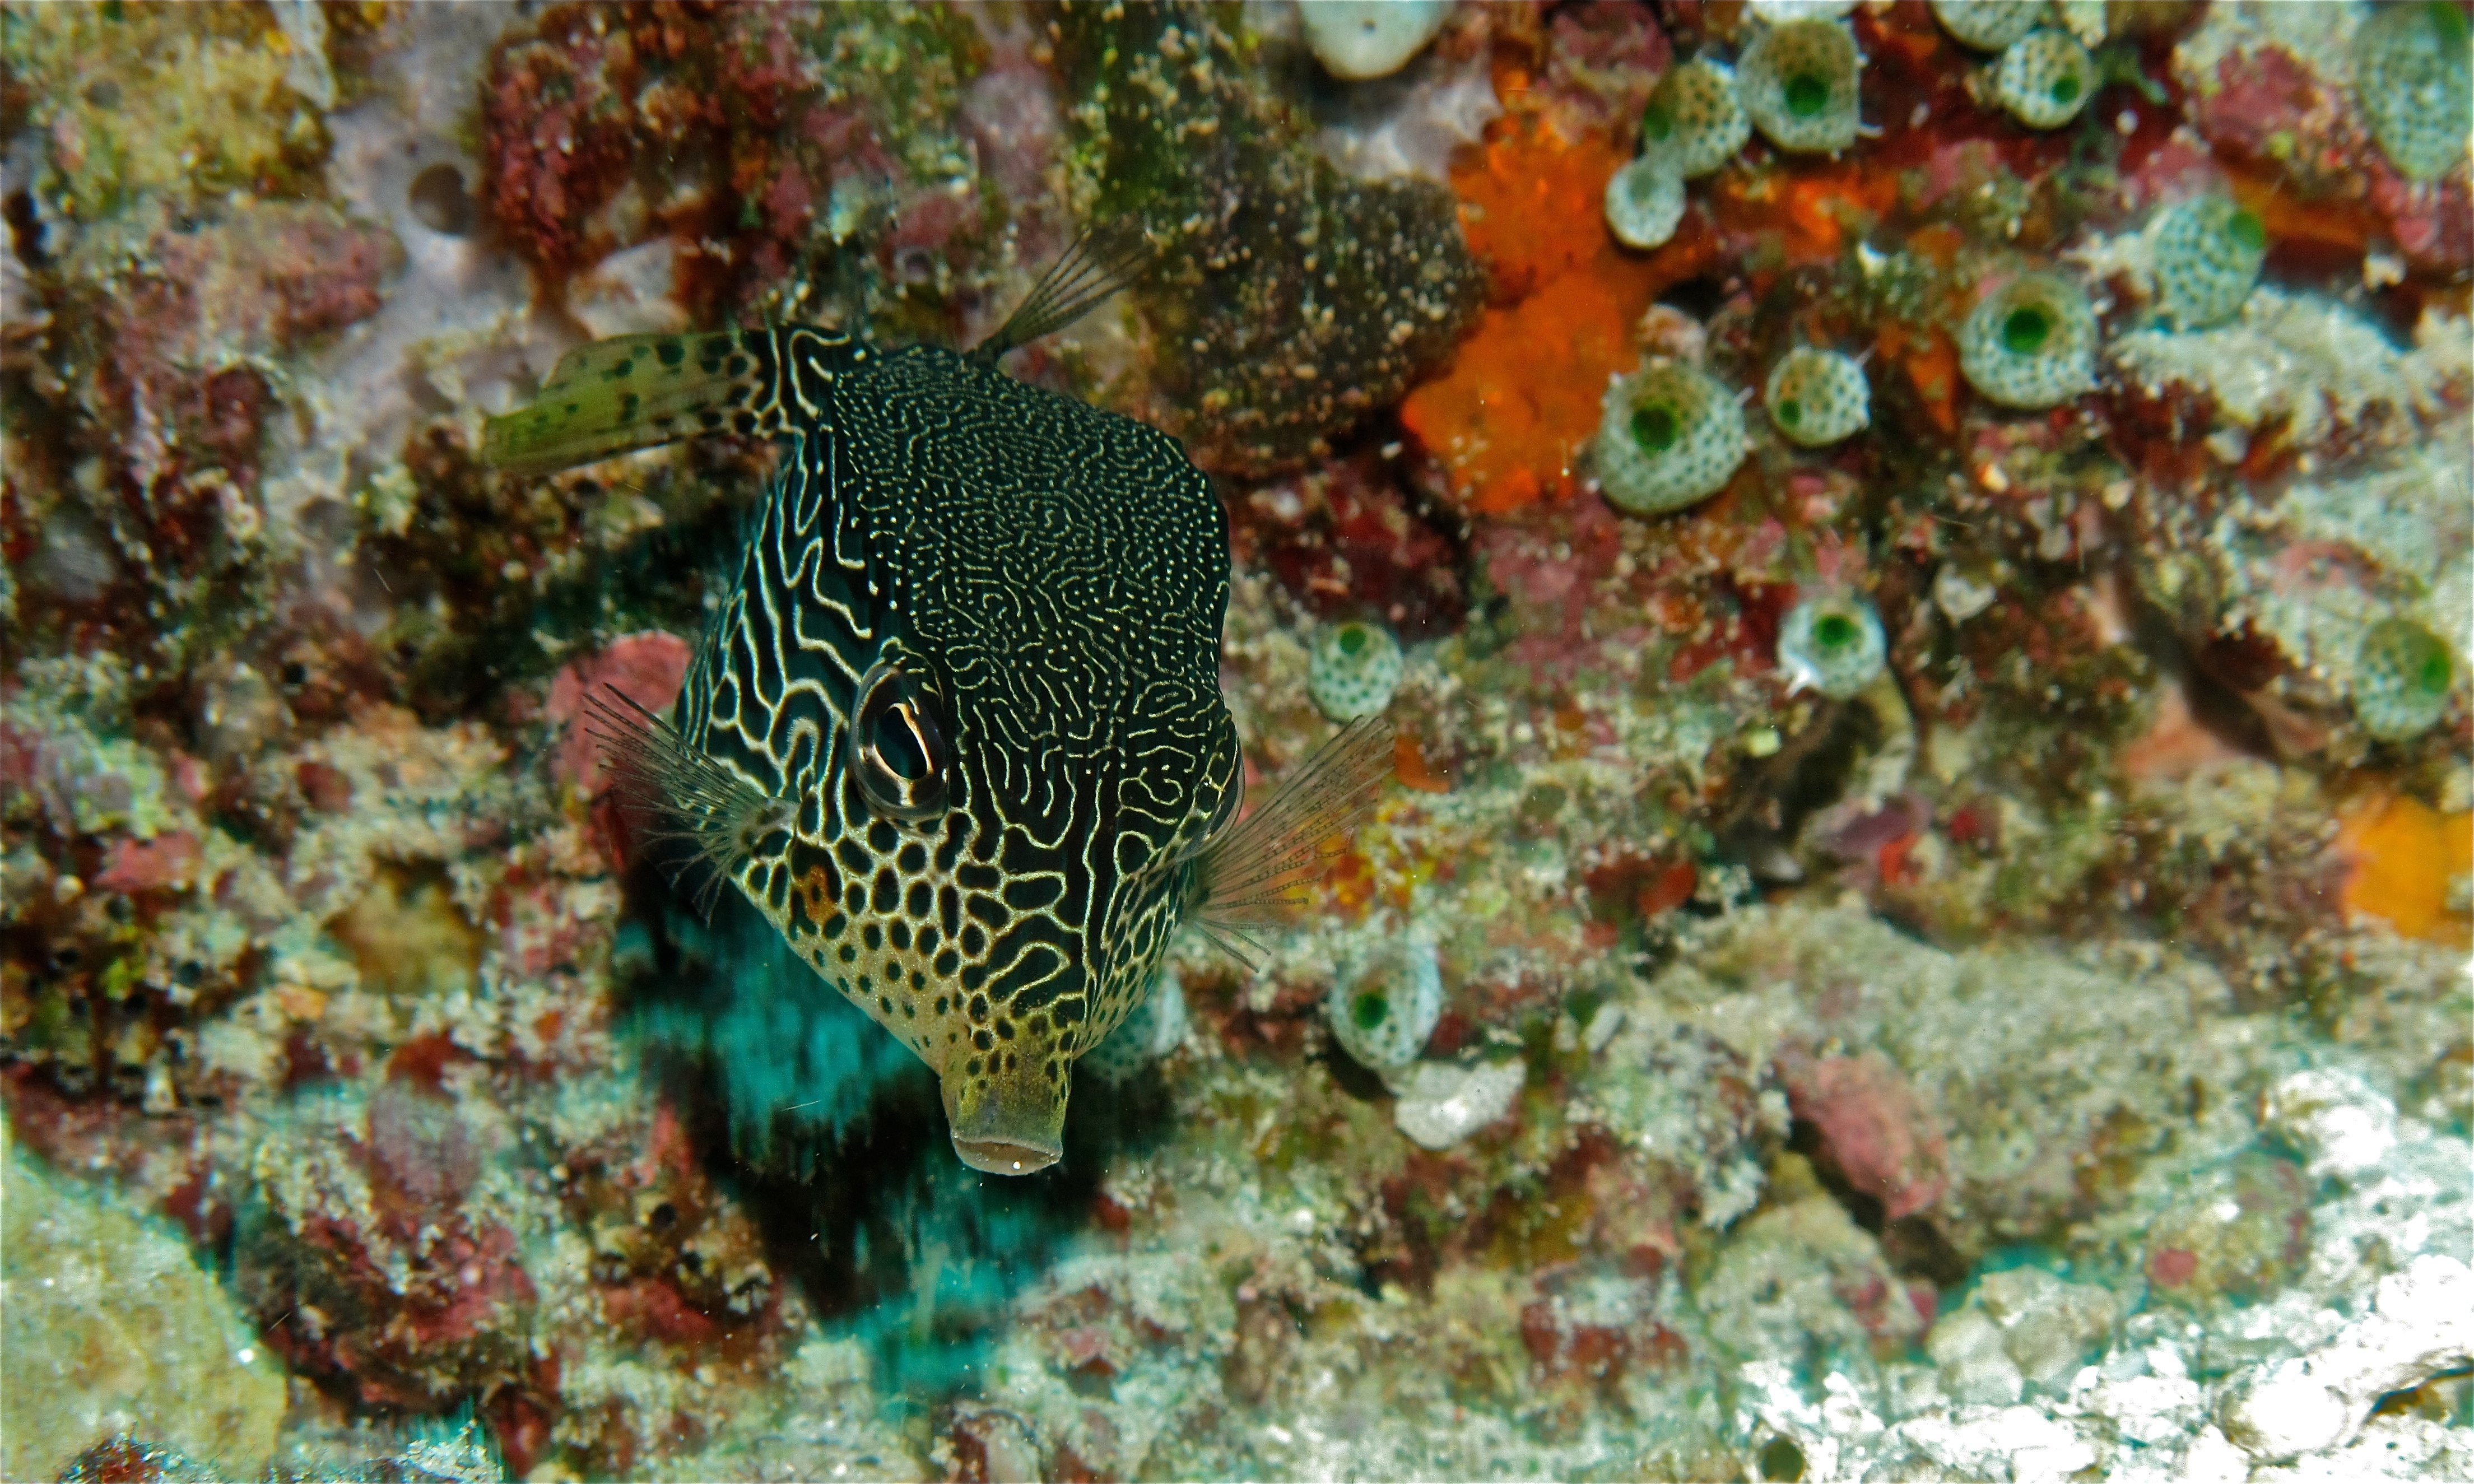 Image of Reticulate boxfish